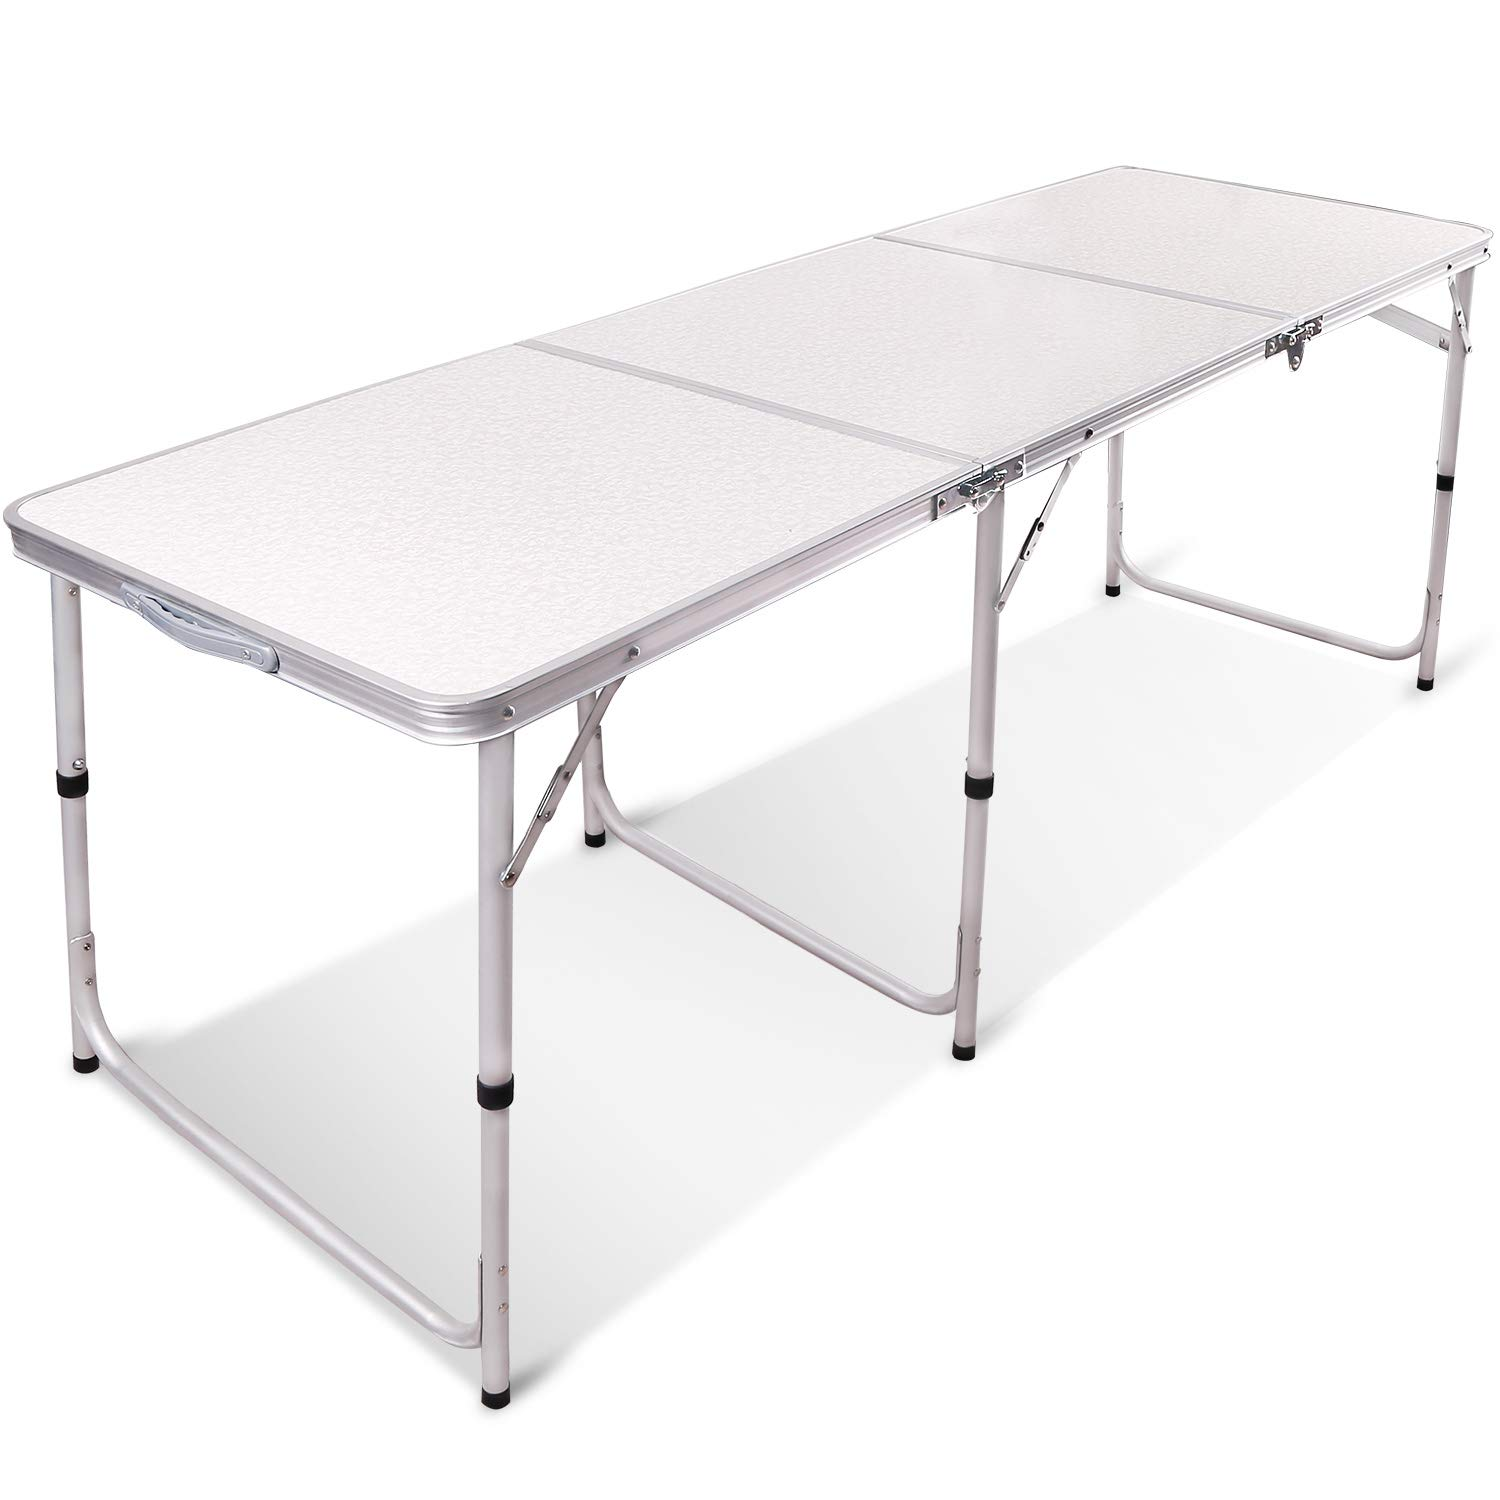 REDCAMP Aluminum Folding Table 6 Foot, Adjustable Height Portable Camping Table, Sturdy Lightweight 72'' Camp Table by